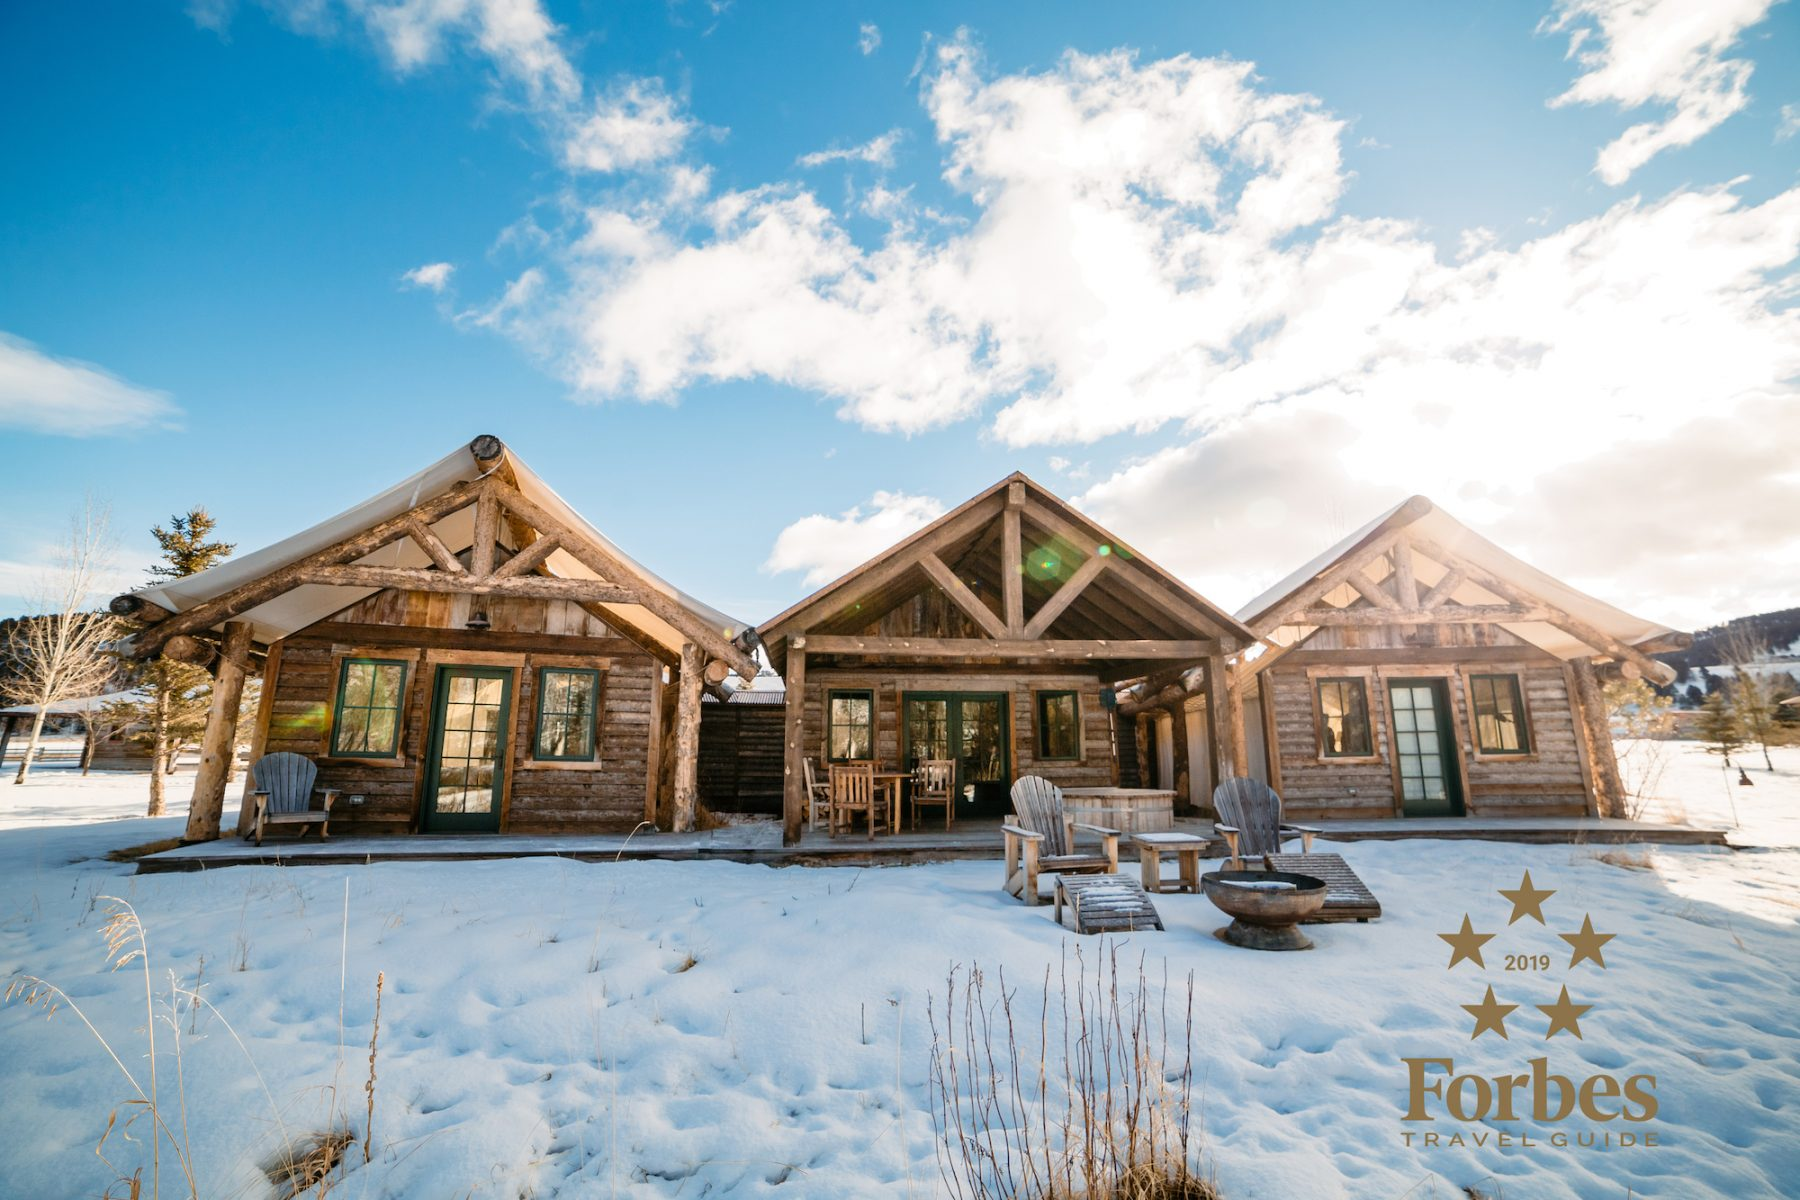 Cattail is one of the beautiful accommodations that helped earn The Ranch its sixth consecutive Forbes Travel Guide Five-Star award in 2019.